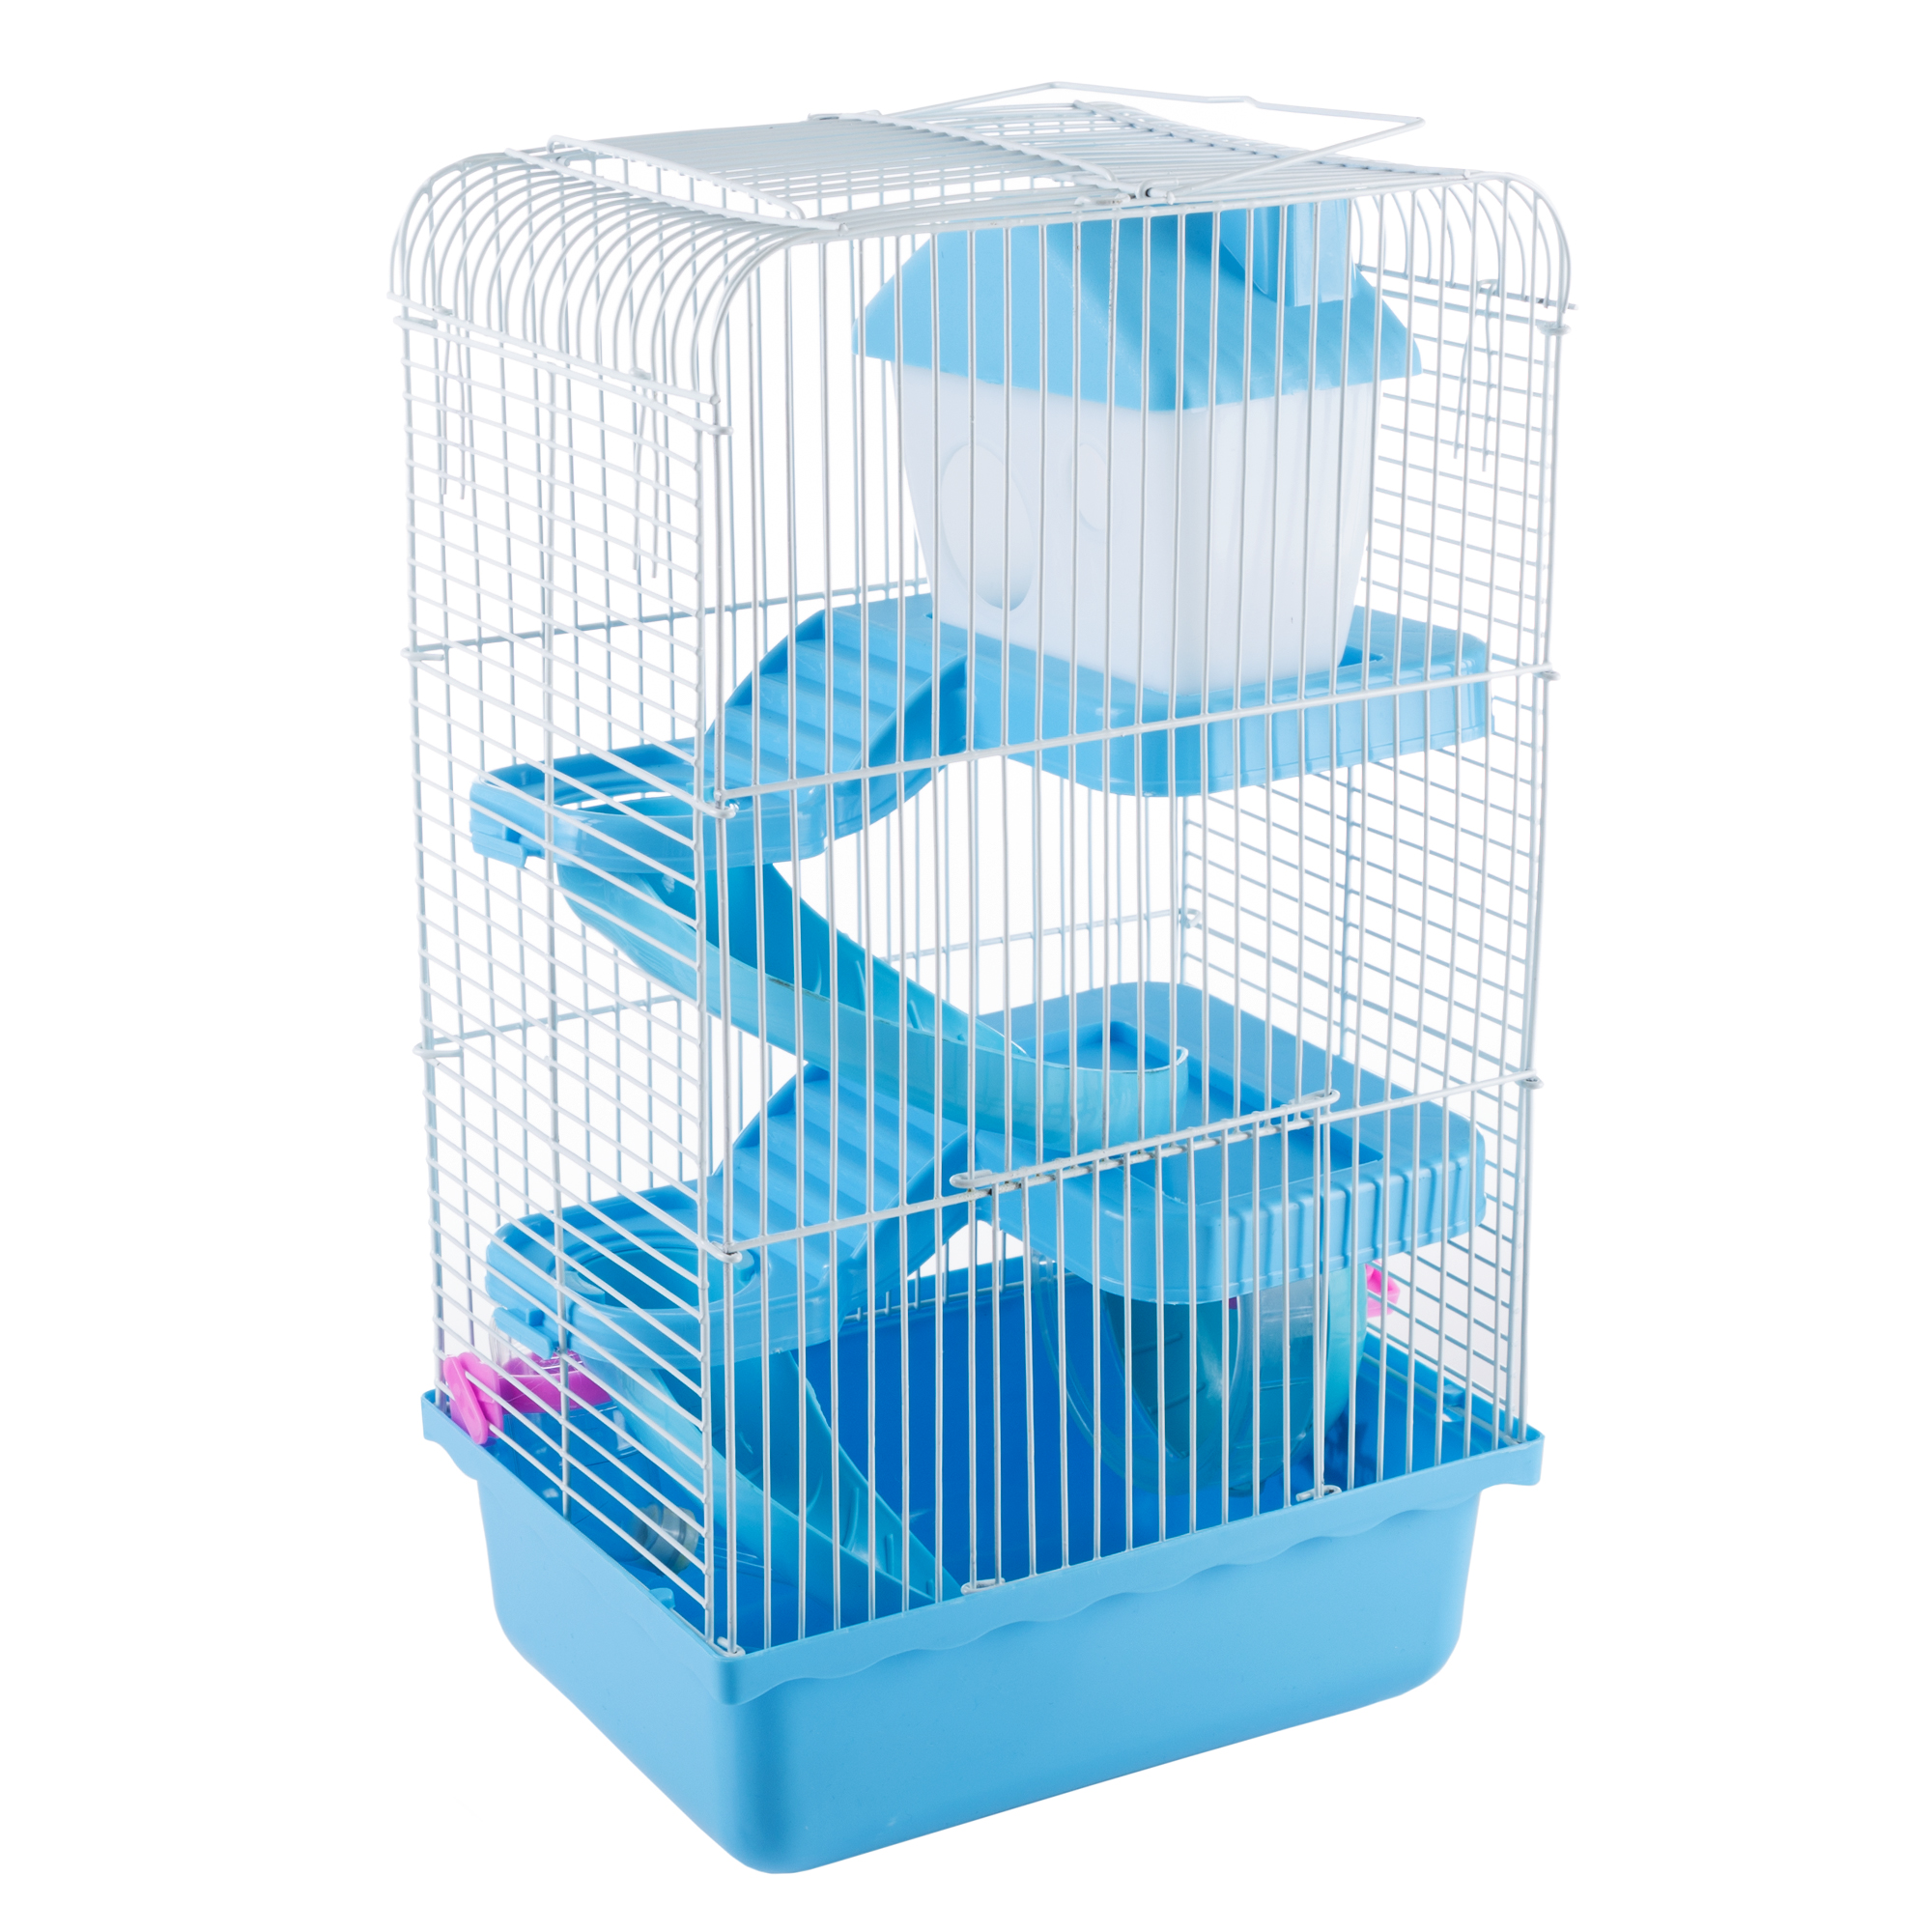 Hamster Cage Habitat, Critter/Gerbil/ Small Animal Starter Kit with Attachments/Accessories by PETMAKER (Blue)